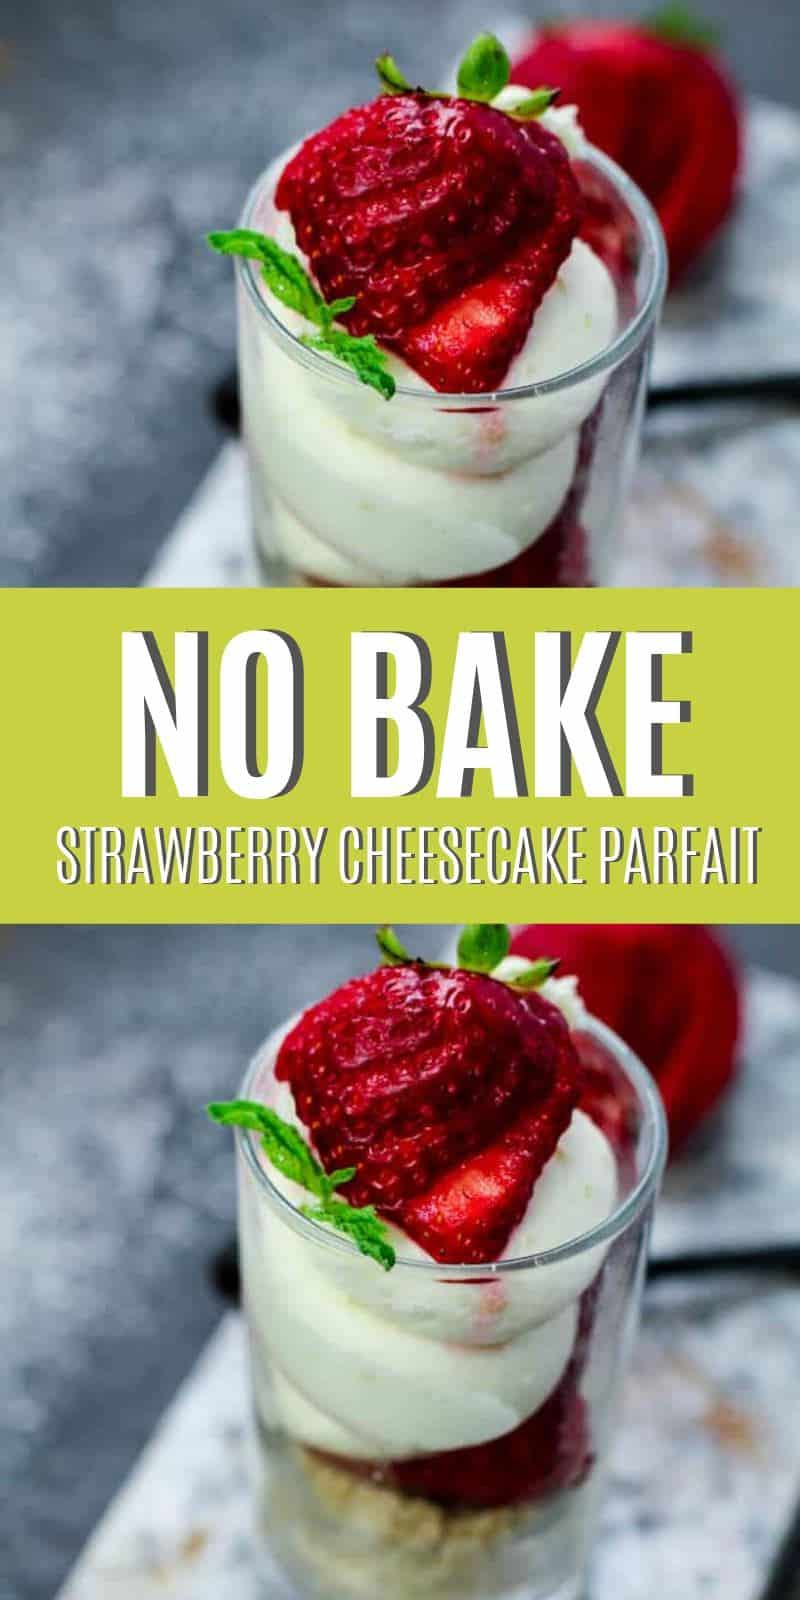 This easy low carb no bake strawberry cheesecake parfait recipe is amazing! It not only tastes delicious, but you are going to love how easy this low carb parfait recipe is to make.